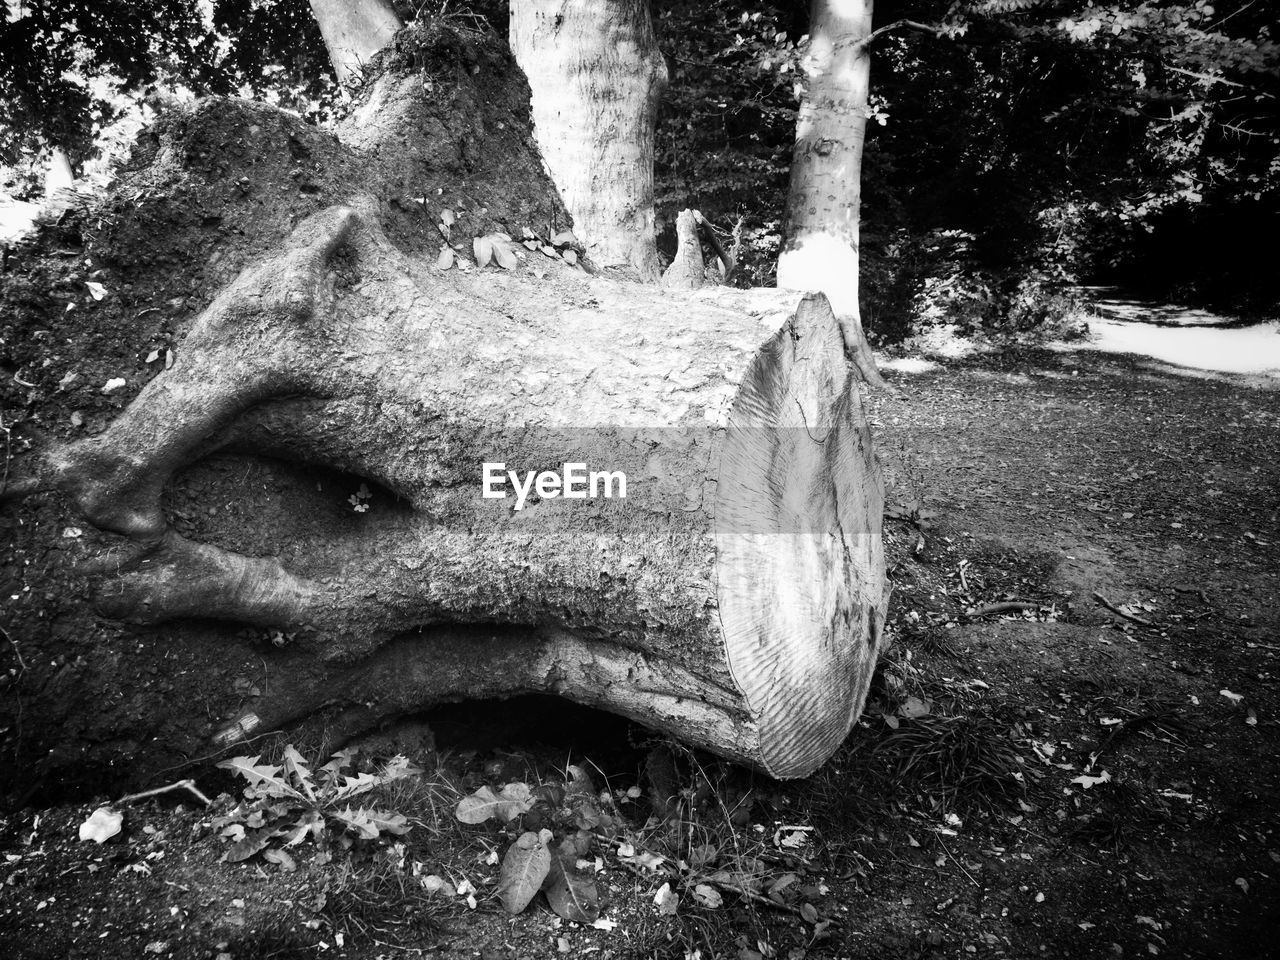 tree, plant, trunk, tree trunk, nature, day, land, close-up, no people, forest, outdoors, representation, art and craft, growth, animal body part, tranquility, park, field, sculpture, animal head